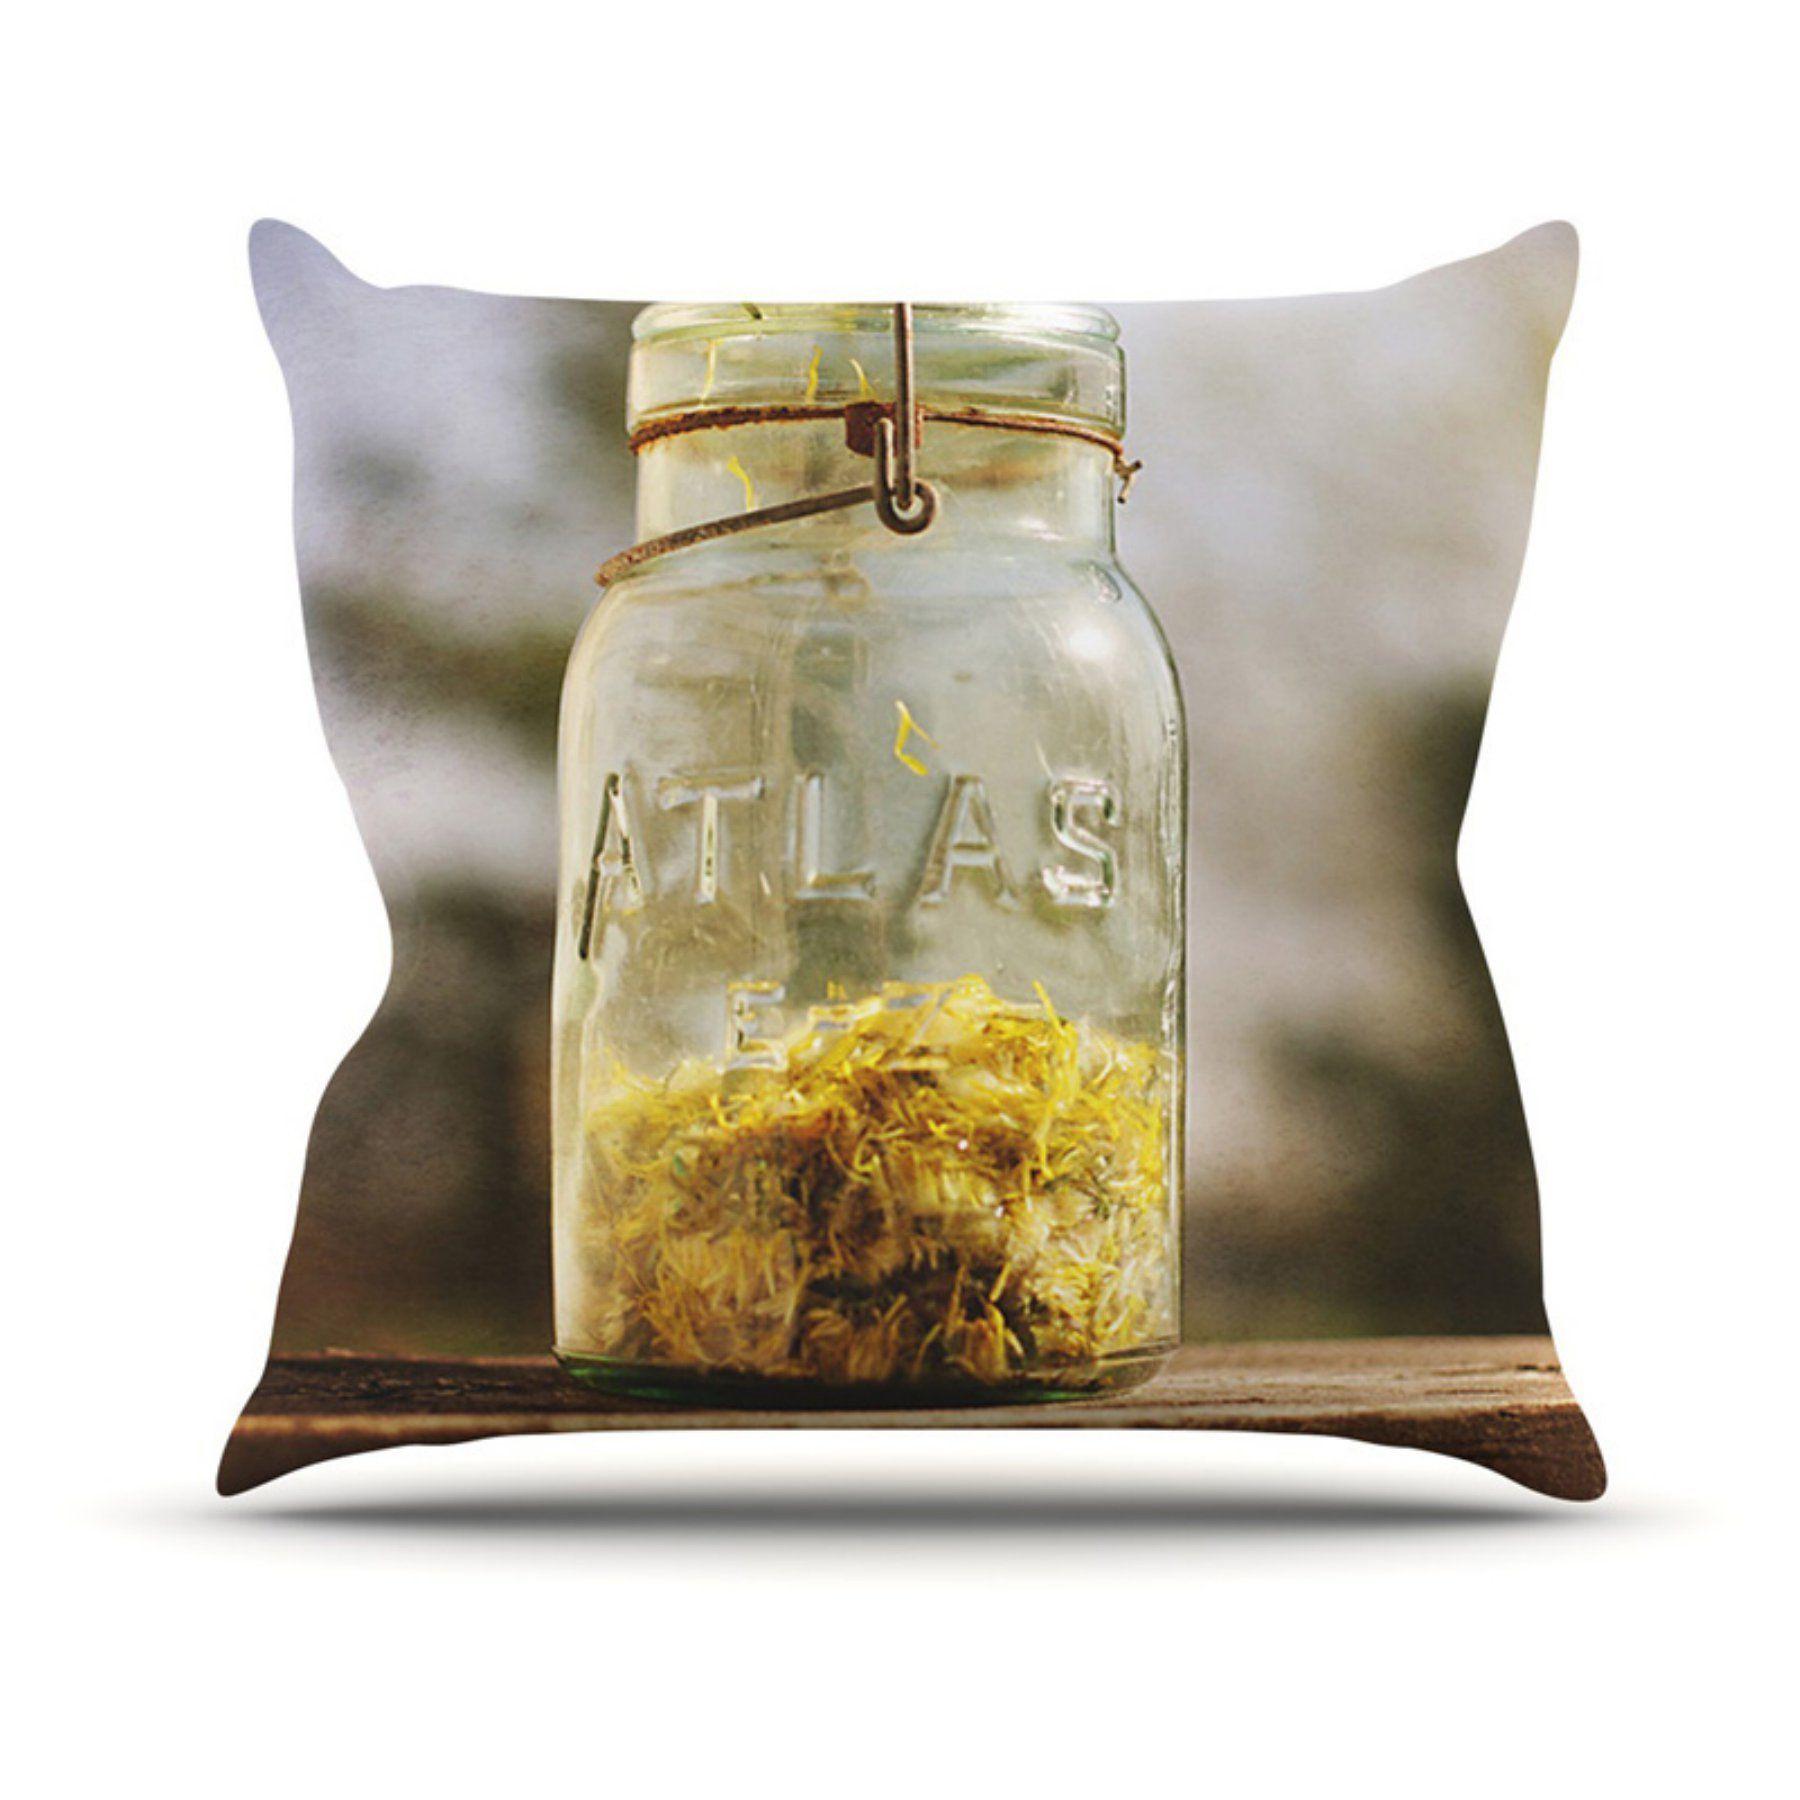 Kess InHouse Angie Turner Jar of Sunshine Country Indoor/Outdoor Throw Pillow - AT1021AOP02